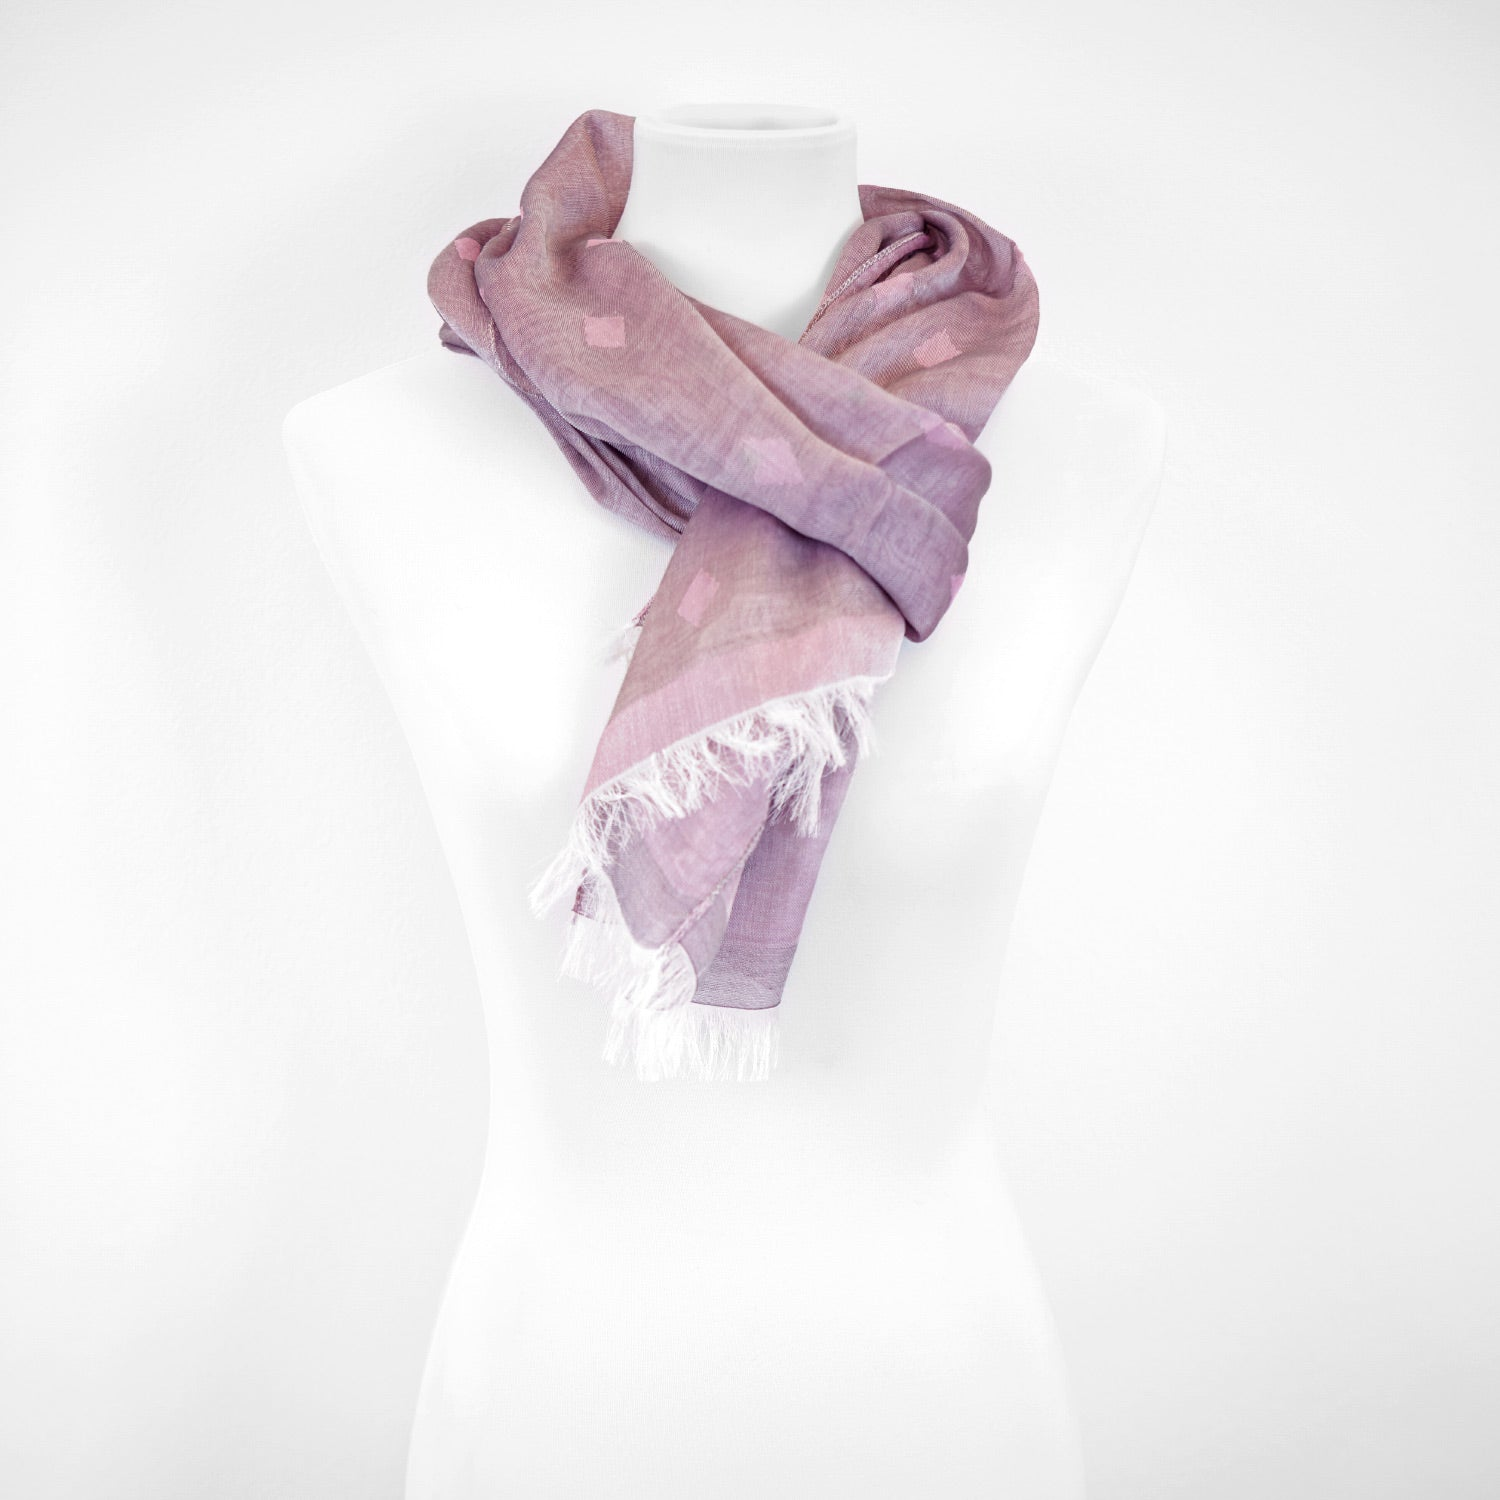 Doria & Dojola Diamonds Cotton blend Scarf. 80% Modal 25% Cotton 15% polyester  50 x 180 cm. 100% Made in Italy. Pictured: Pink scarf.